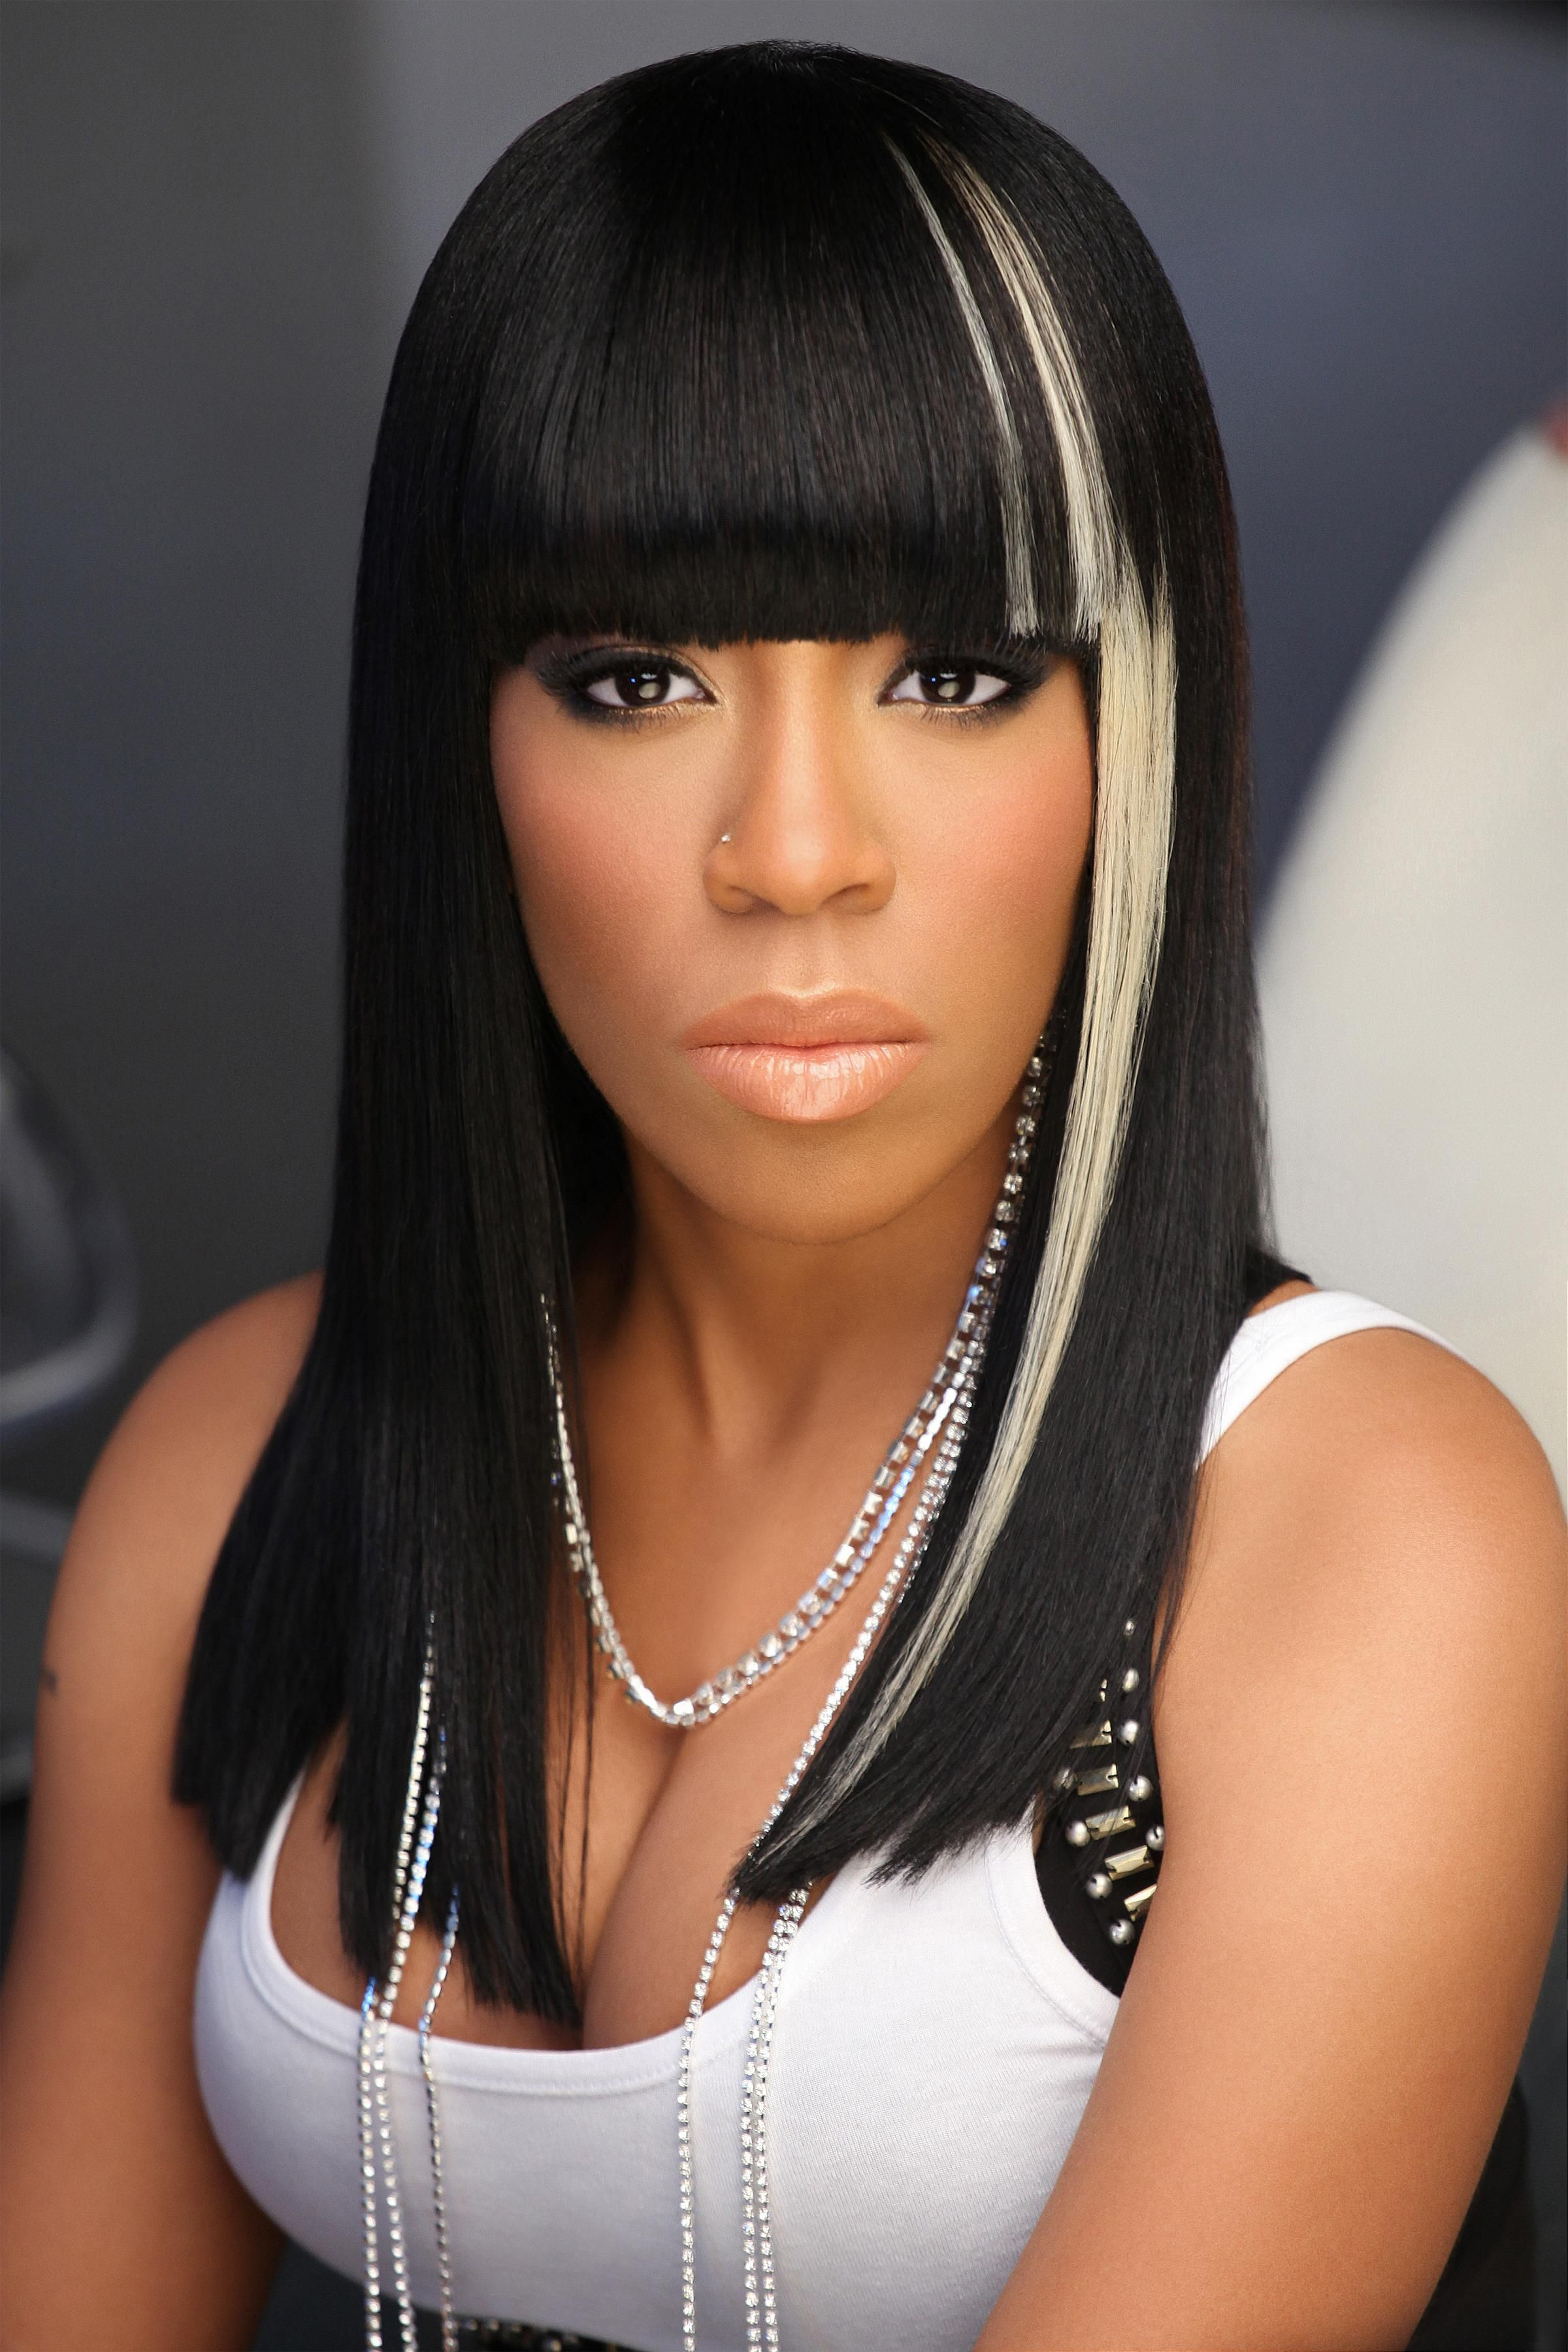 k.michelle | artists | hair styles, wig hairstyles, weave